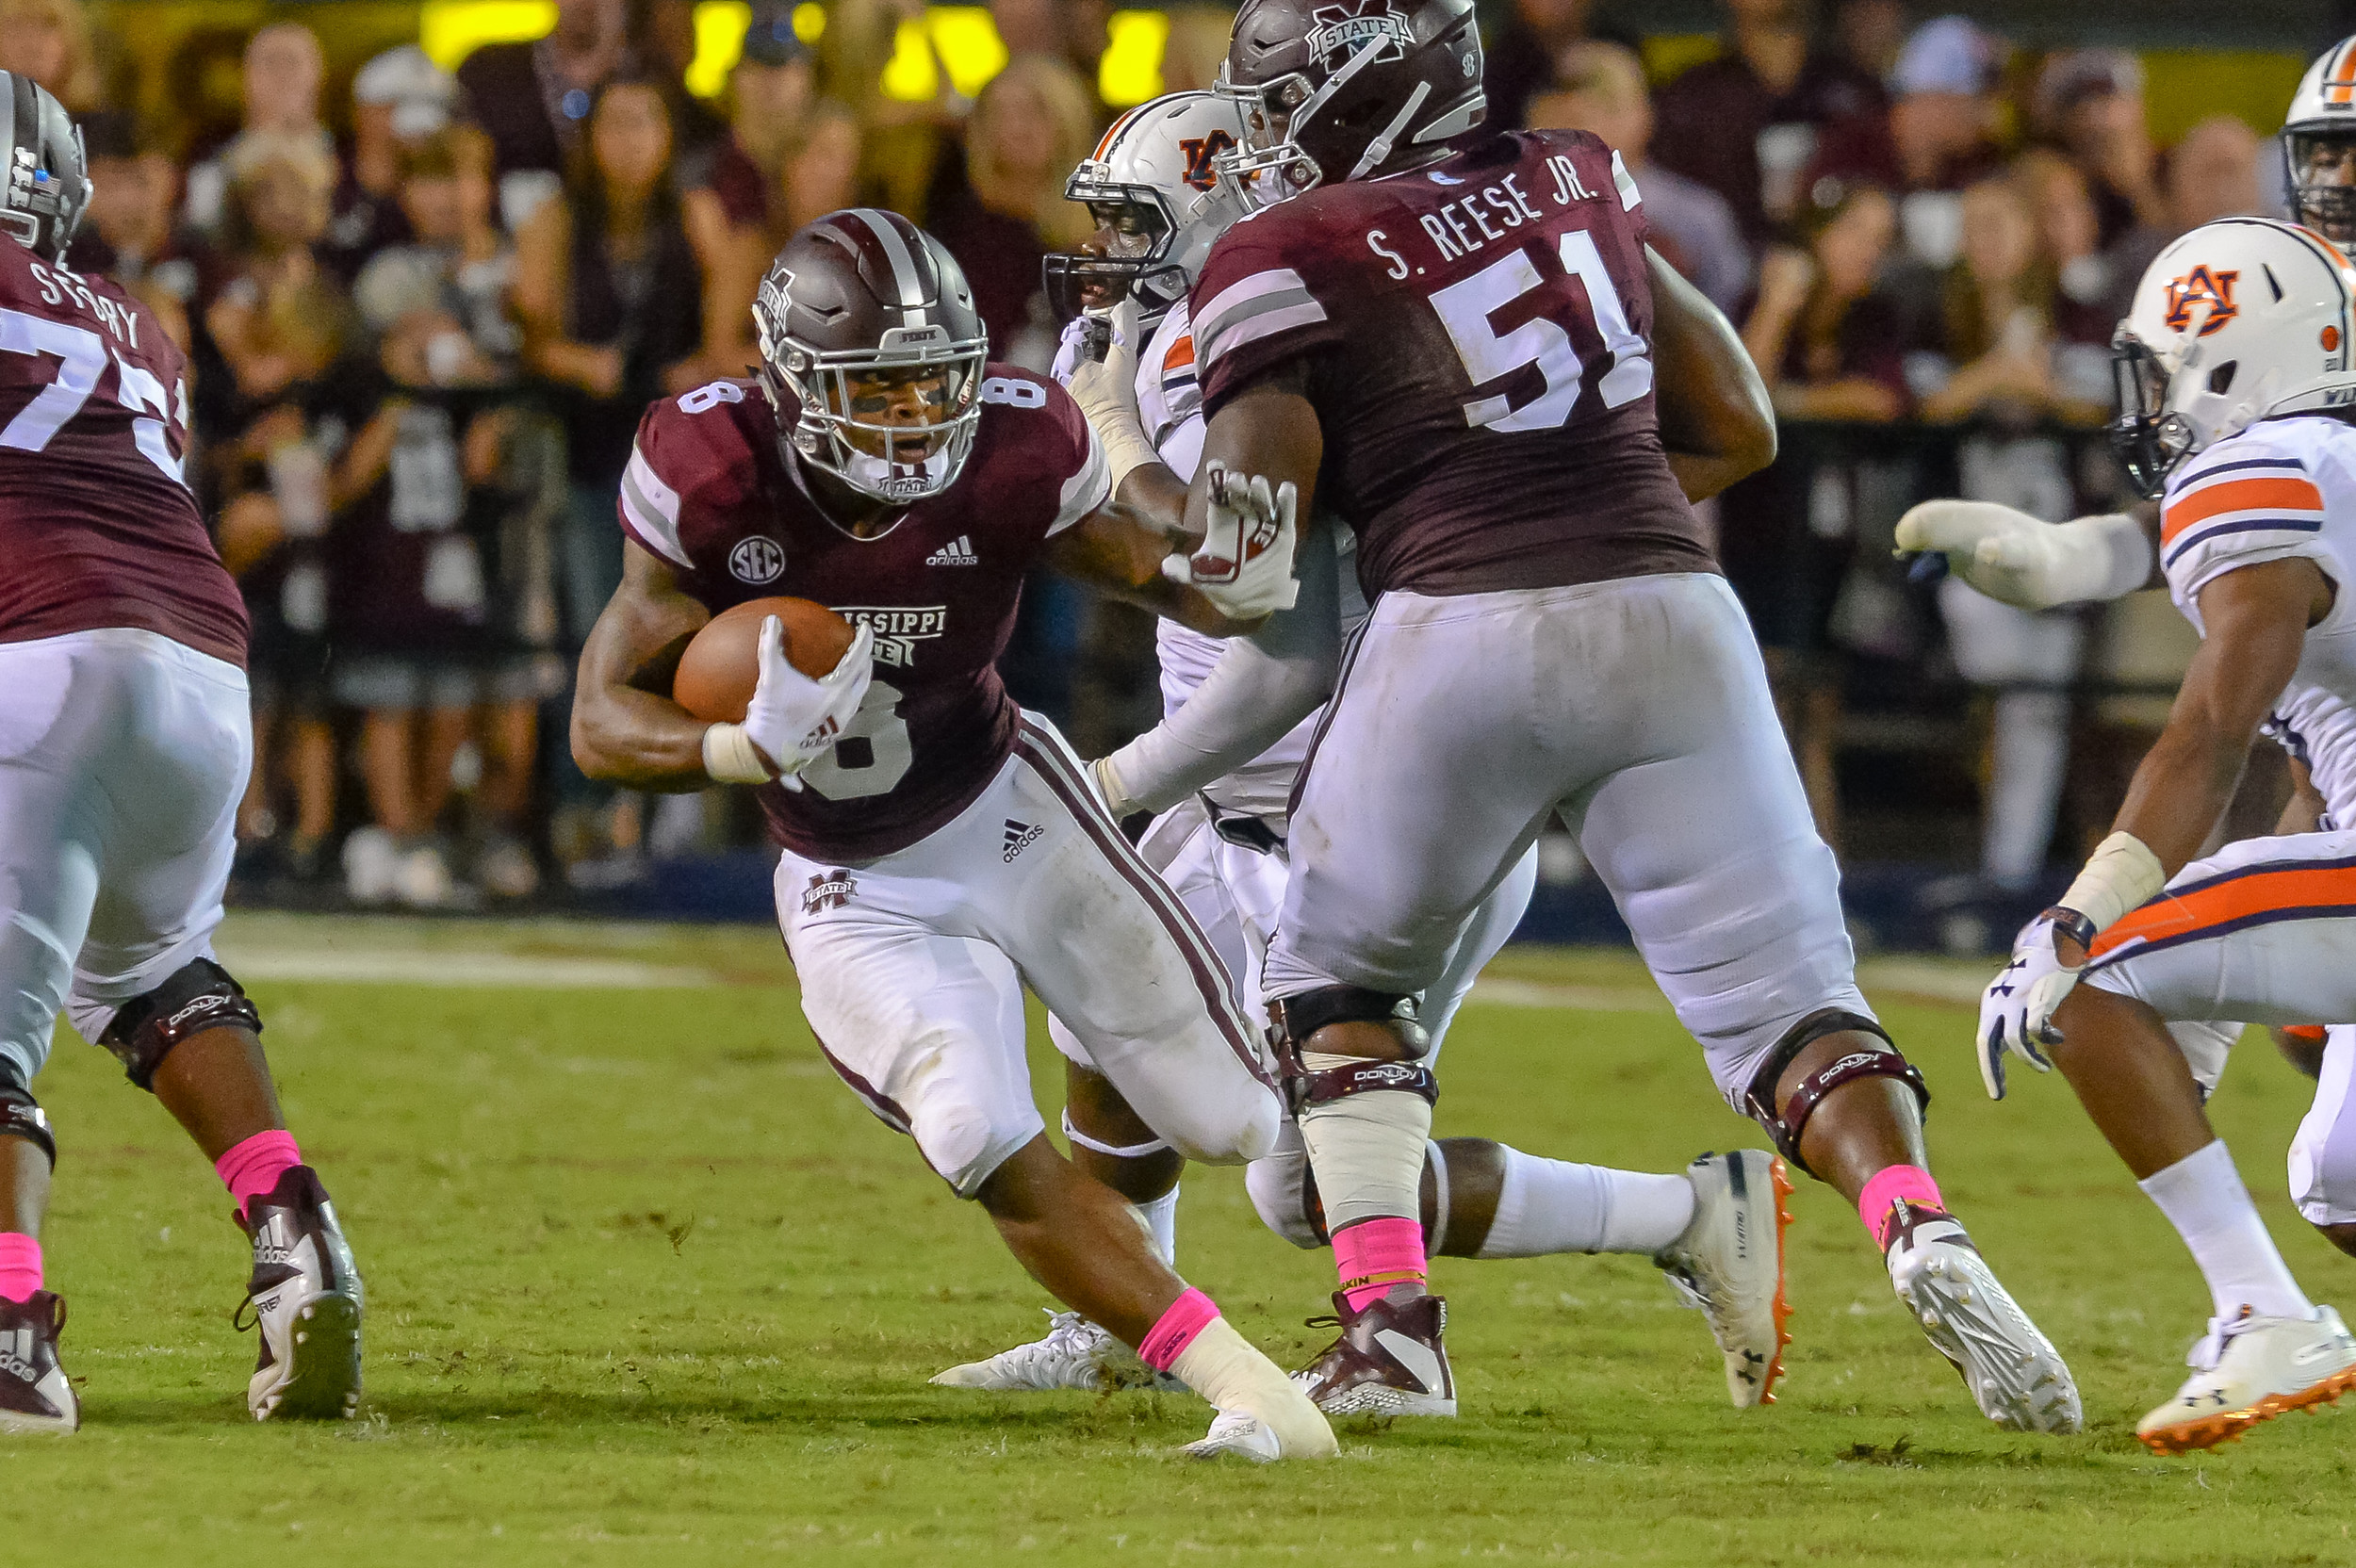 Mississippi State Bulldogs running back Kylin Hill (8) runs during the second half of Saturday's game, at Davis Wade Stadium in Starkville, MS. Daily Mountain Eagle -  Jeff Johnsey